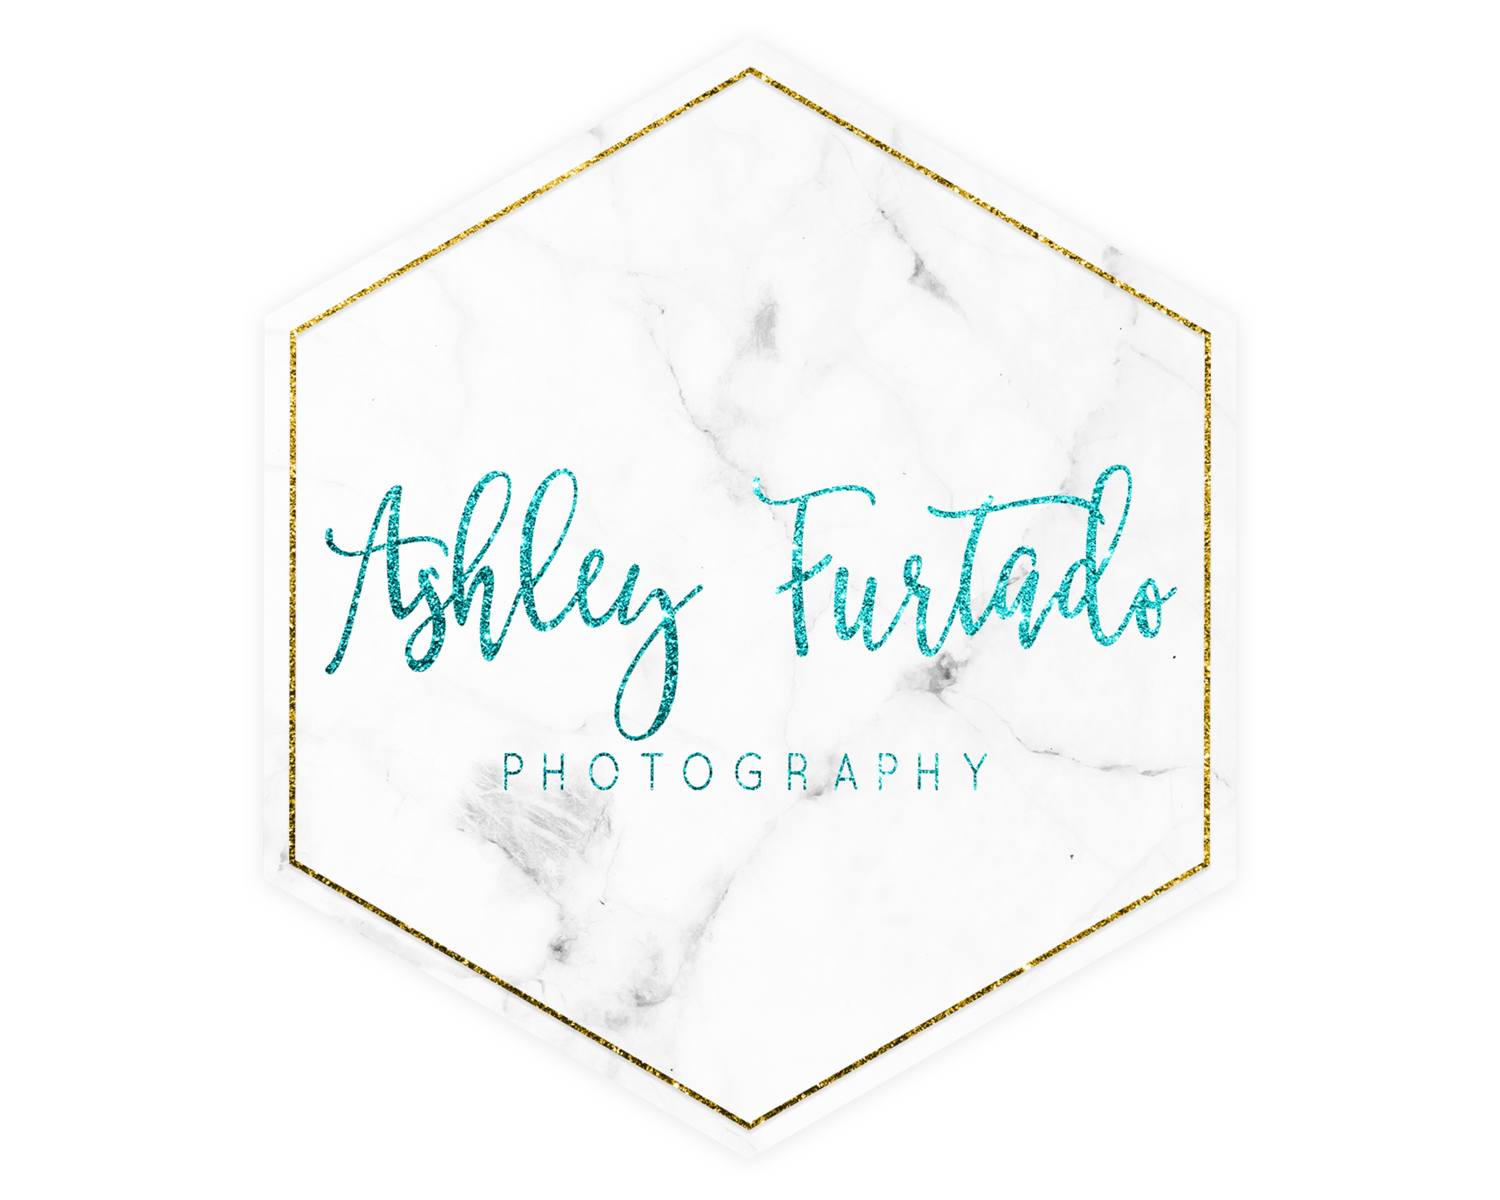 Ashley Furtado Photography